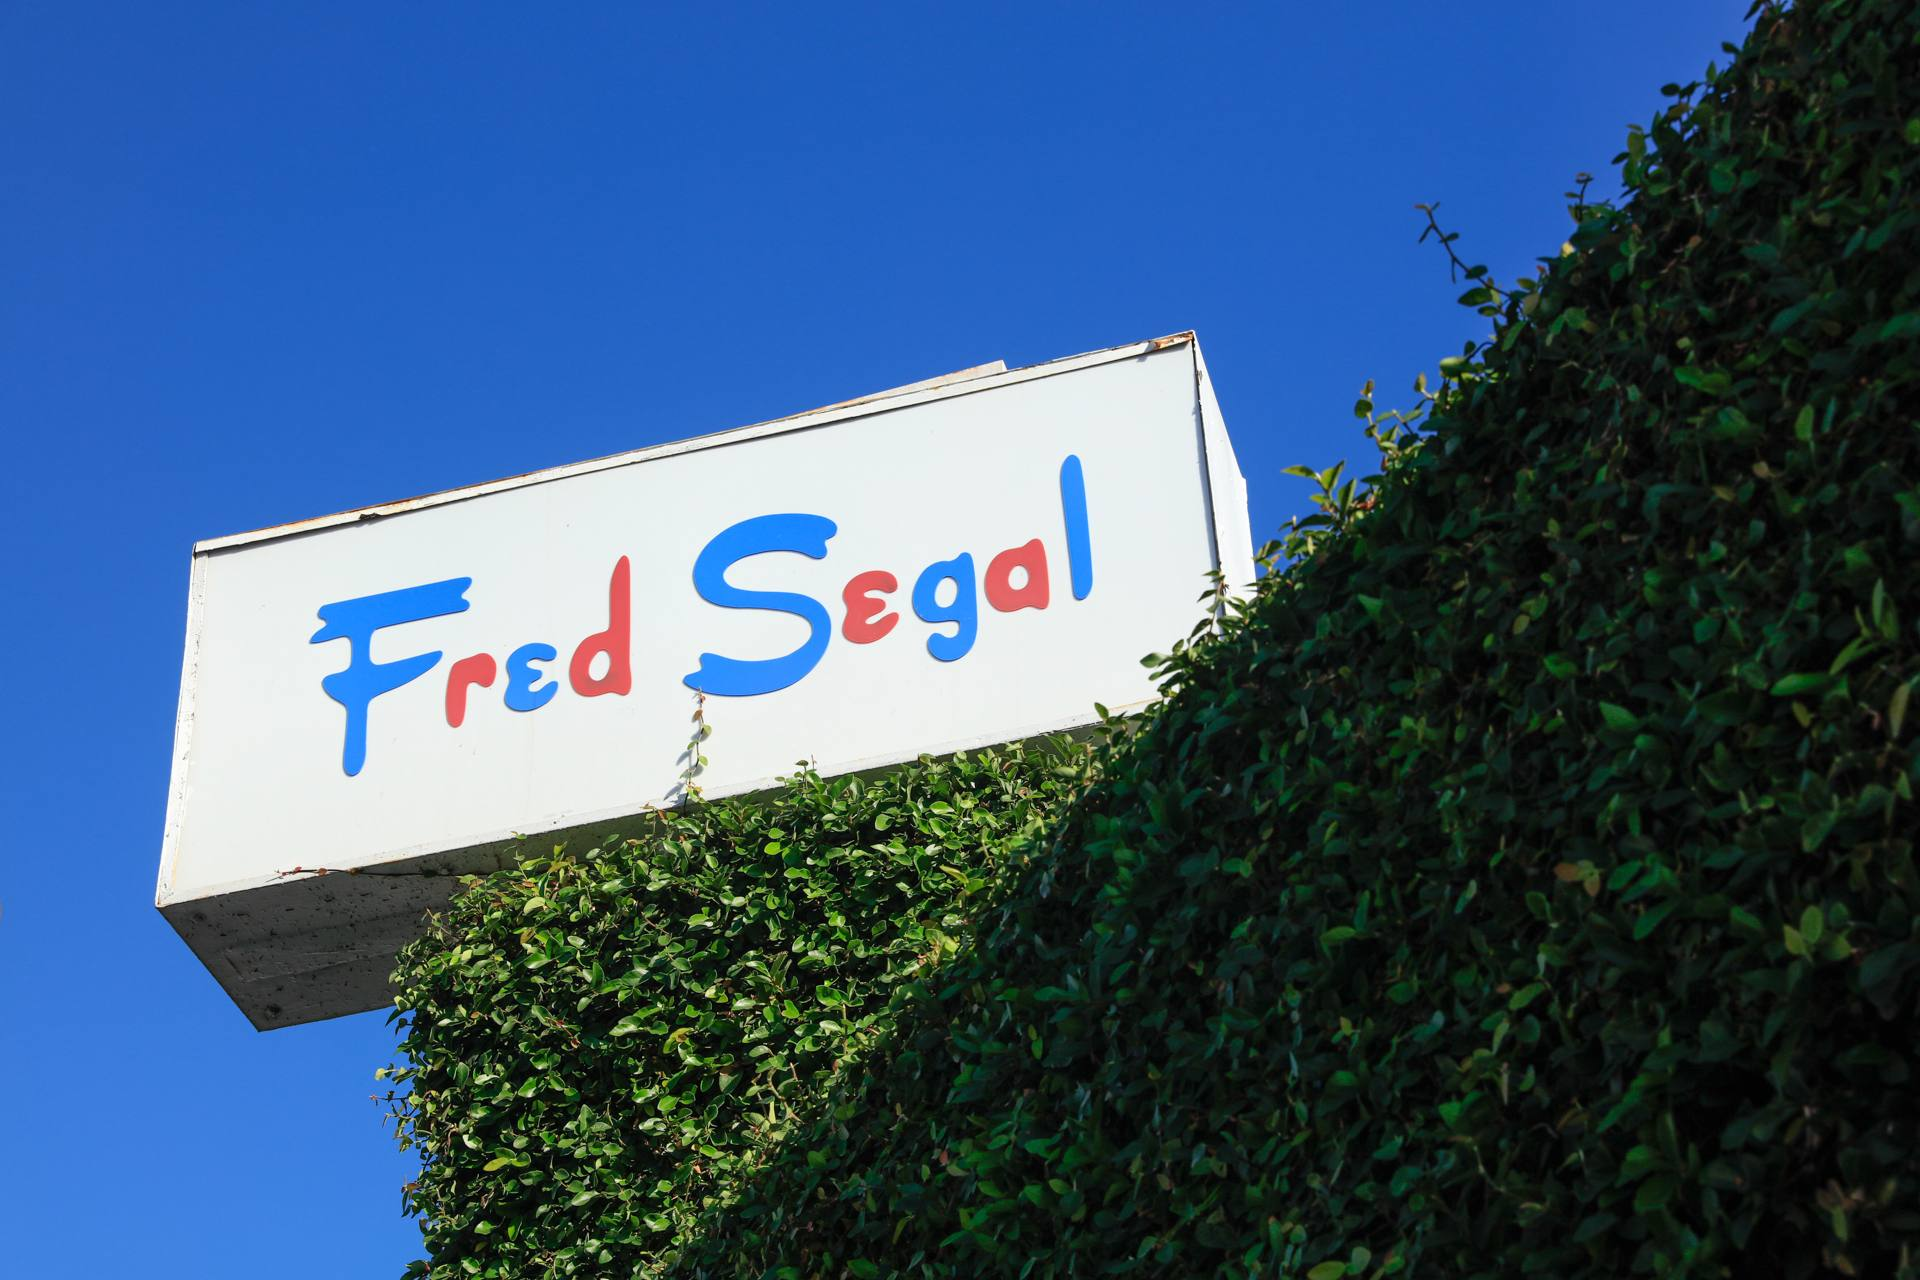 Fred Segal sign at Melrose Avenue and Crescent Heights